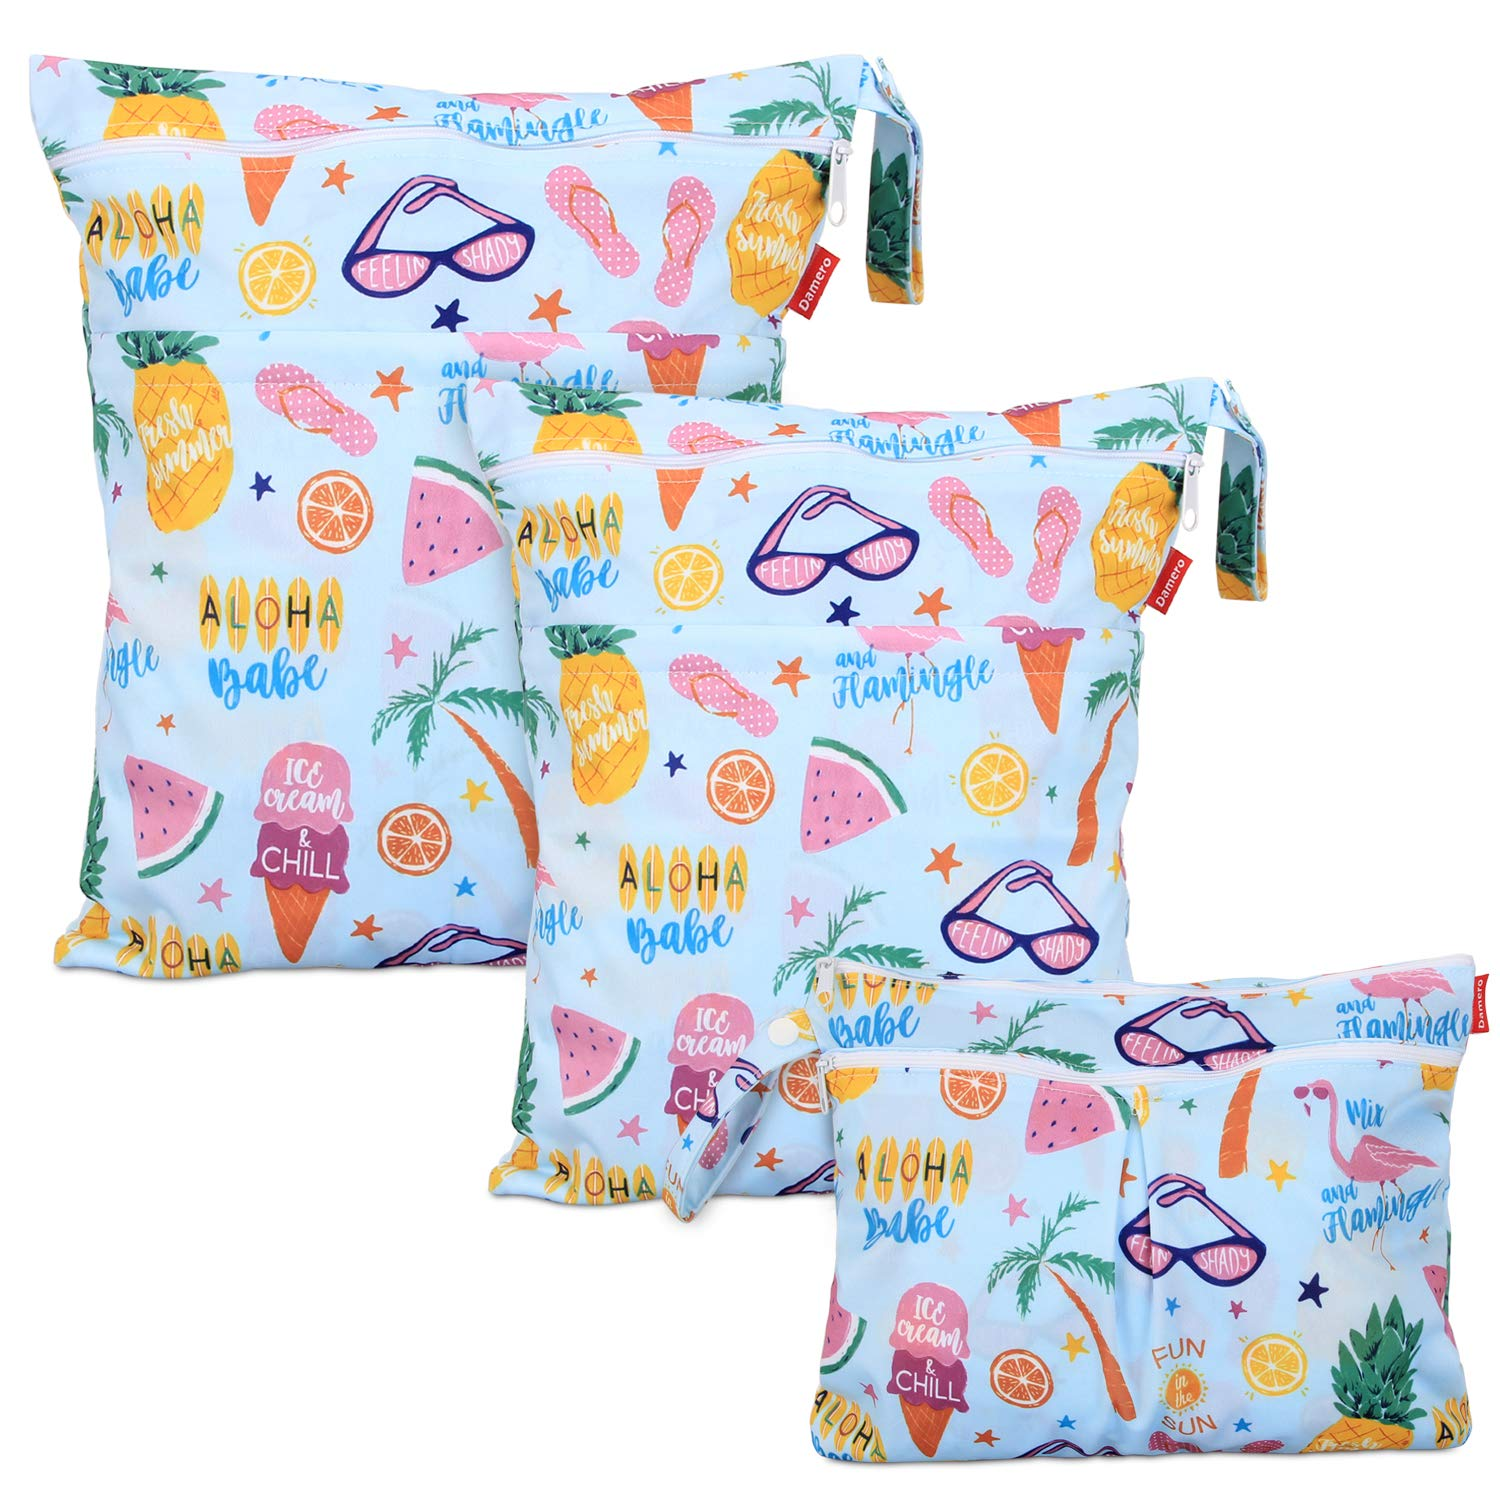 Damero 3 pcs Baby Wet Dry Cloth Diaper Bag, Reusable Wet Dry Nappy Bag, Travel Diaper Organiser Bag for Baby's Nappies, Dirty Clothes and More (Summer Holiday)